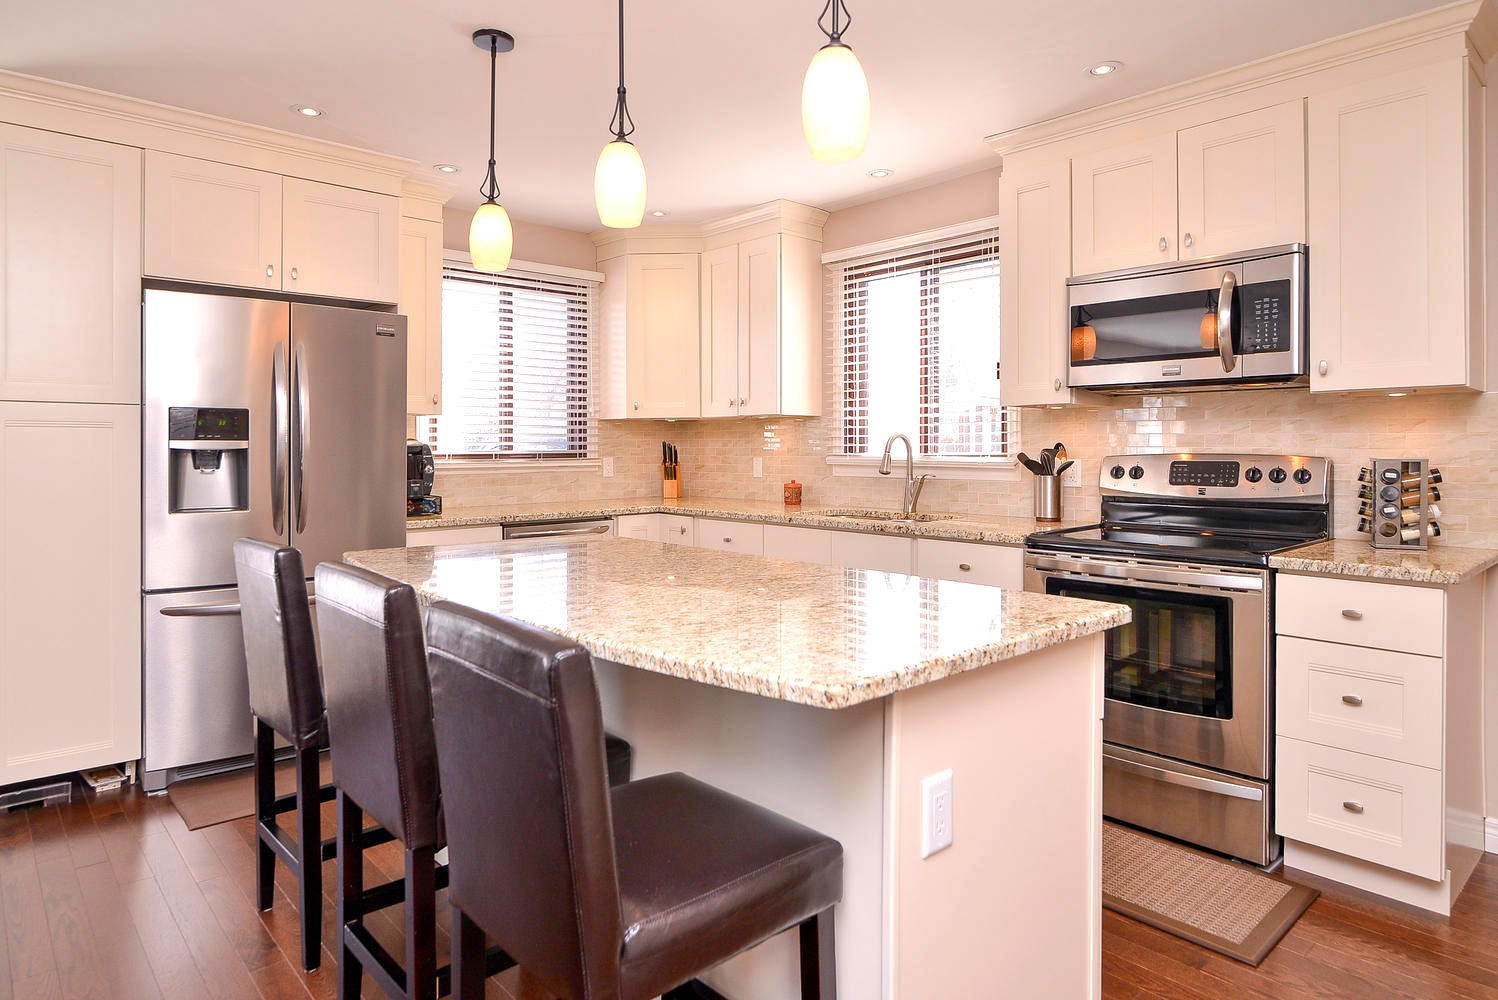 Common Mistakes Made While Choosing Kitchen Cabinets